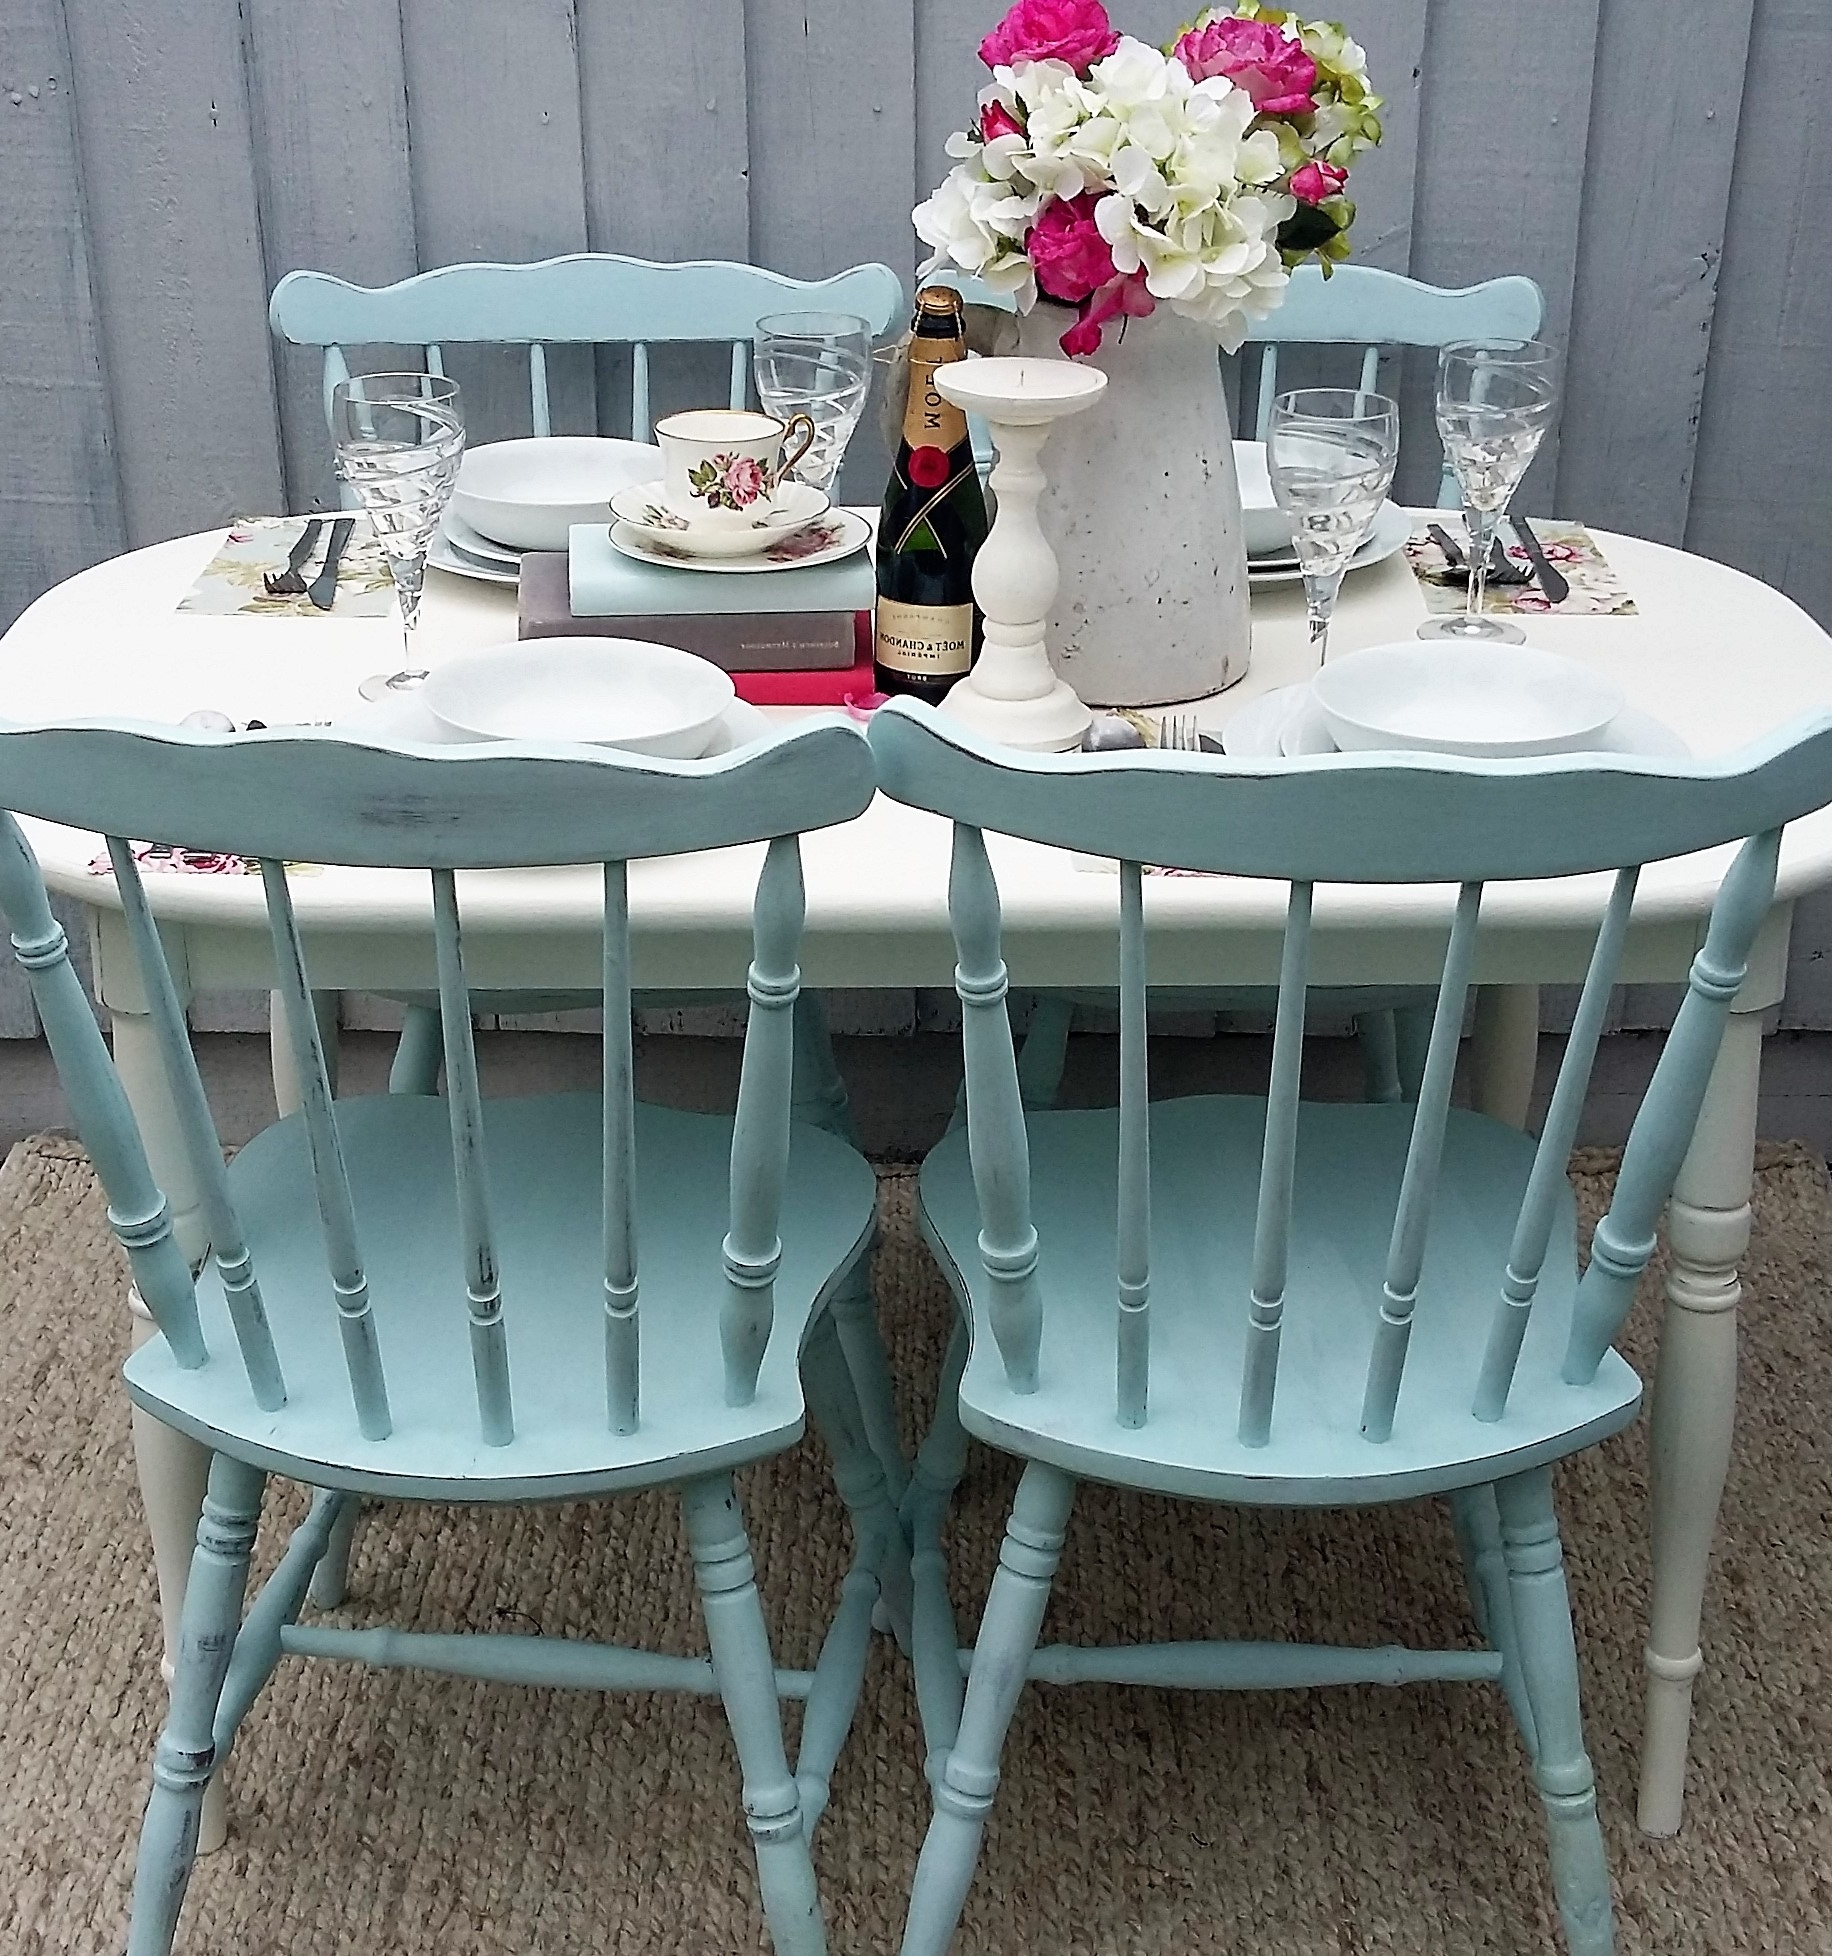 Shabby Chic Dining Sets For Widely Used Shabby Chic/vintage Dining Table & Chairs (View 12 of 25)